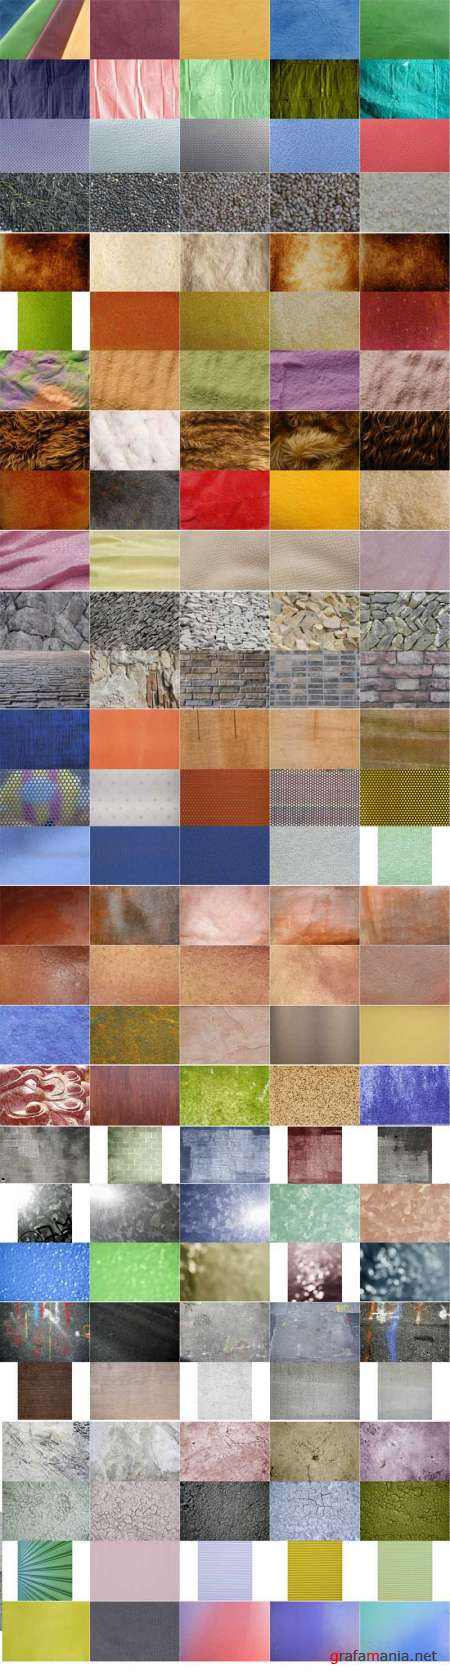 Graphic Library Texture 500